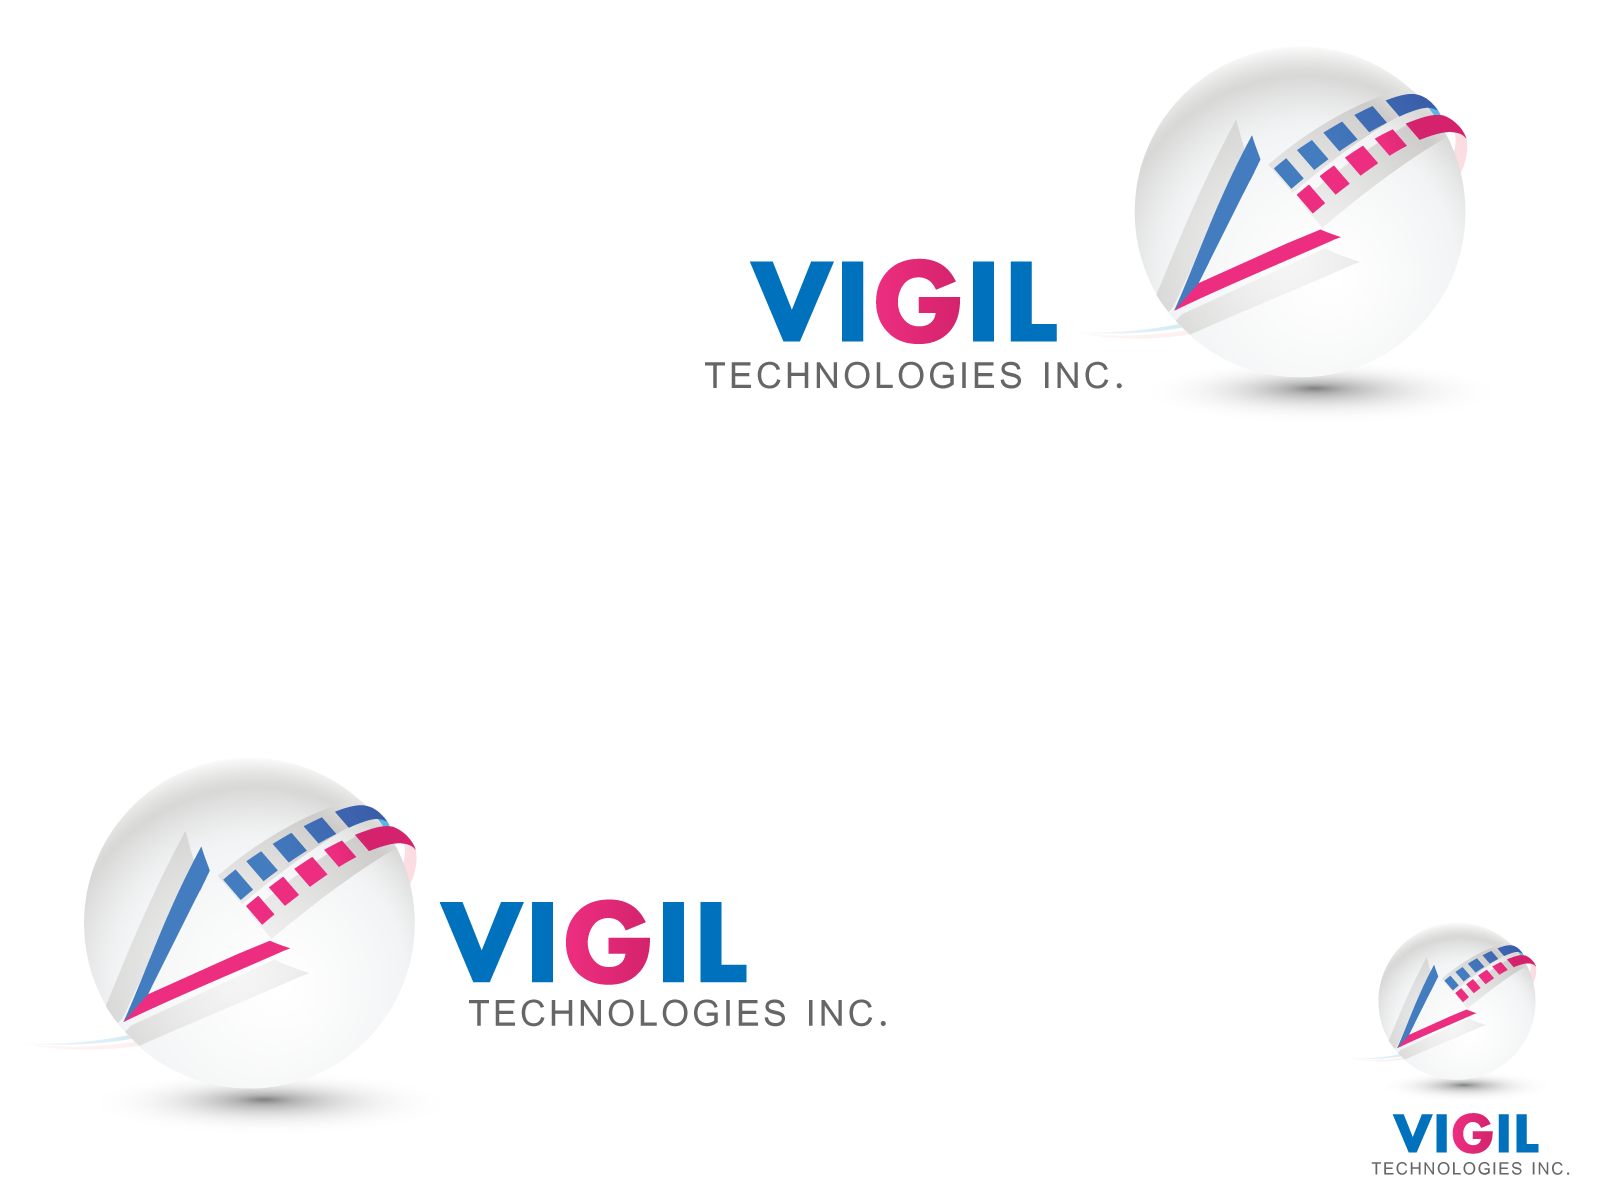 Logo Design by Jagdeep Singh - Entry No. 104 in the Logo Design Contest New Logo Design for Vigil Technologies Inc..